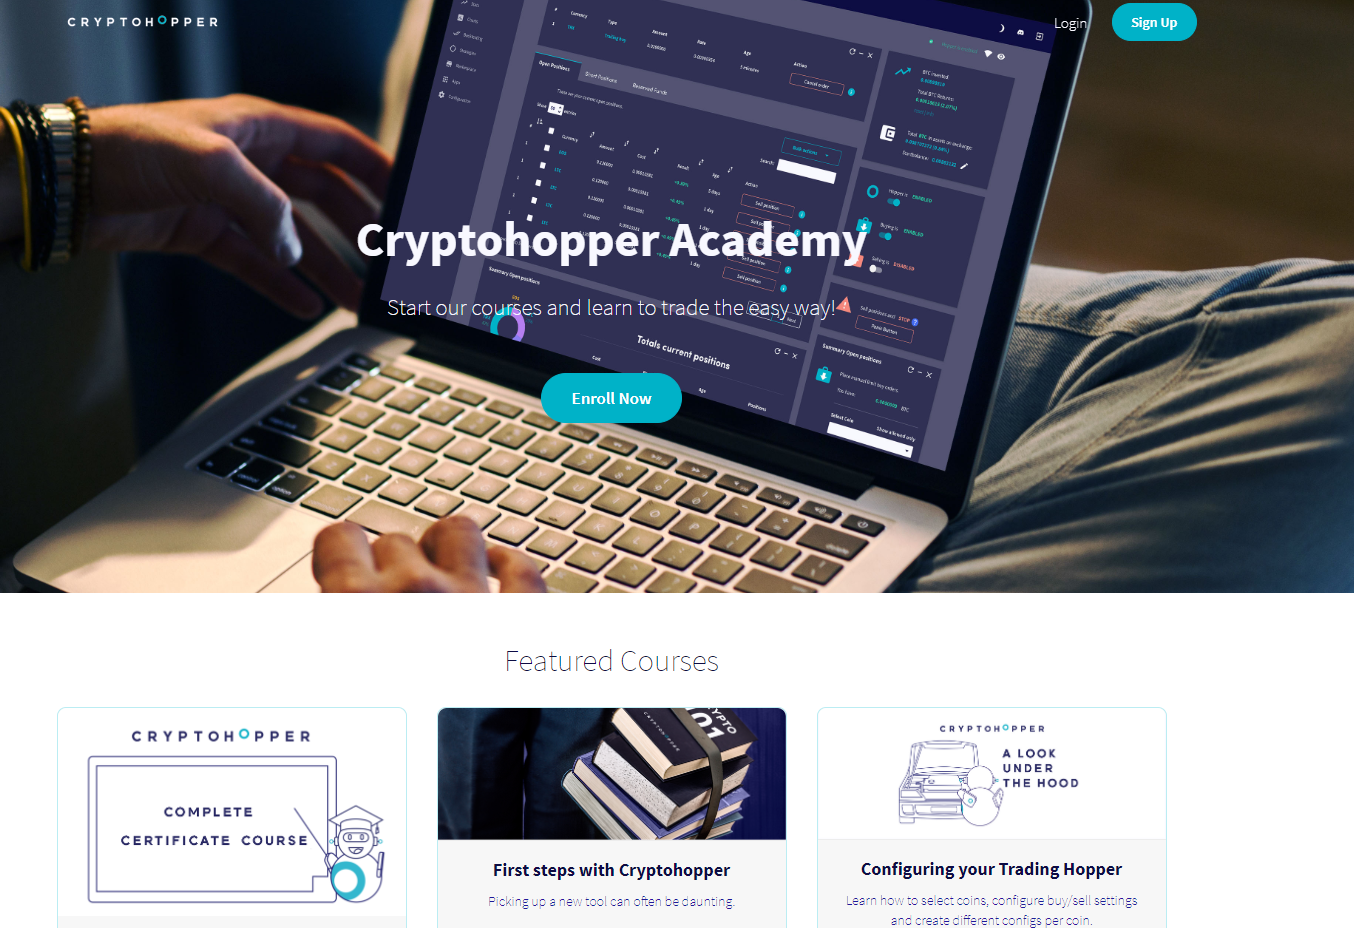 Academy Automated automatic trading bot platform crypto cryptocurrencies Cryptohopper bitcoin ethereum